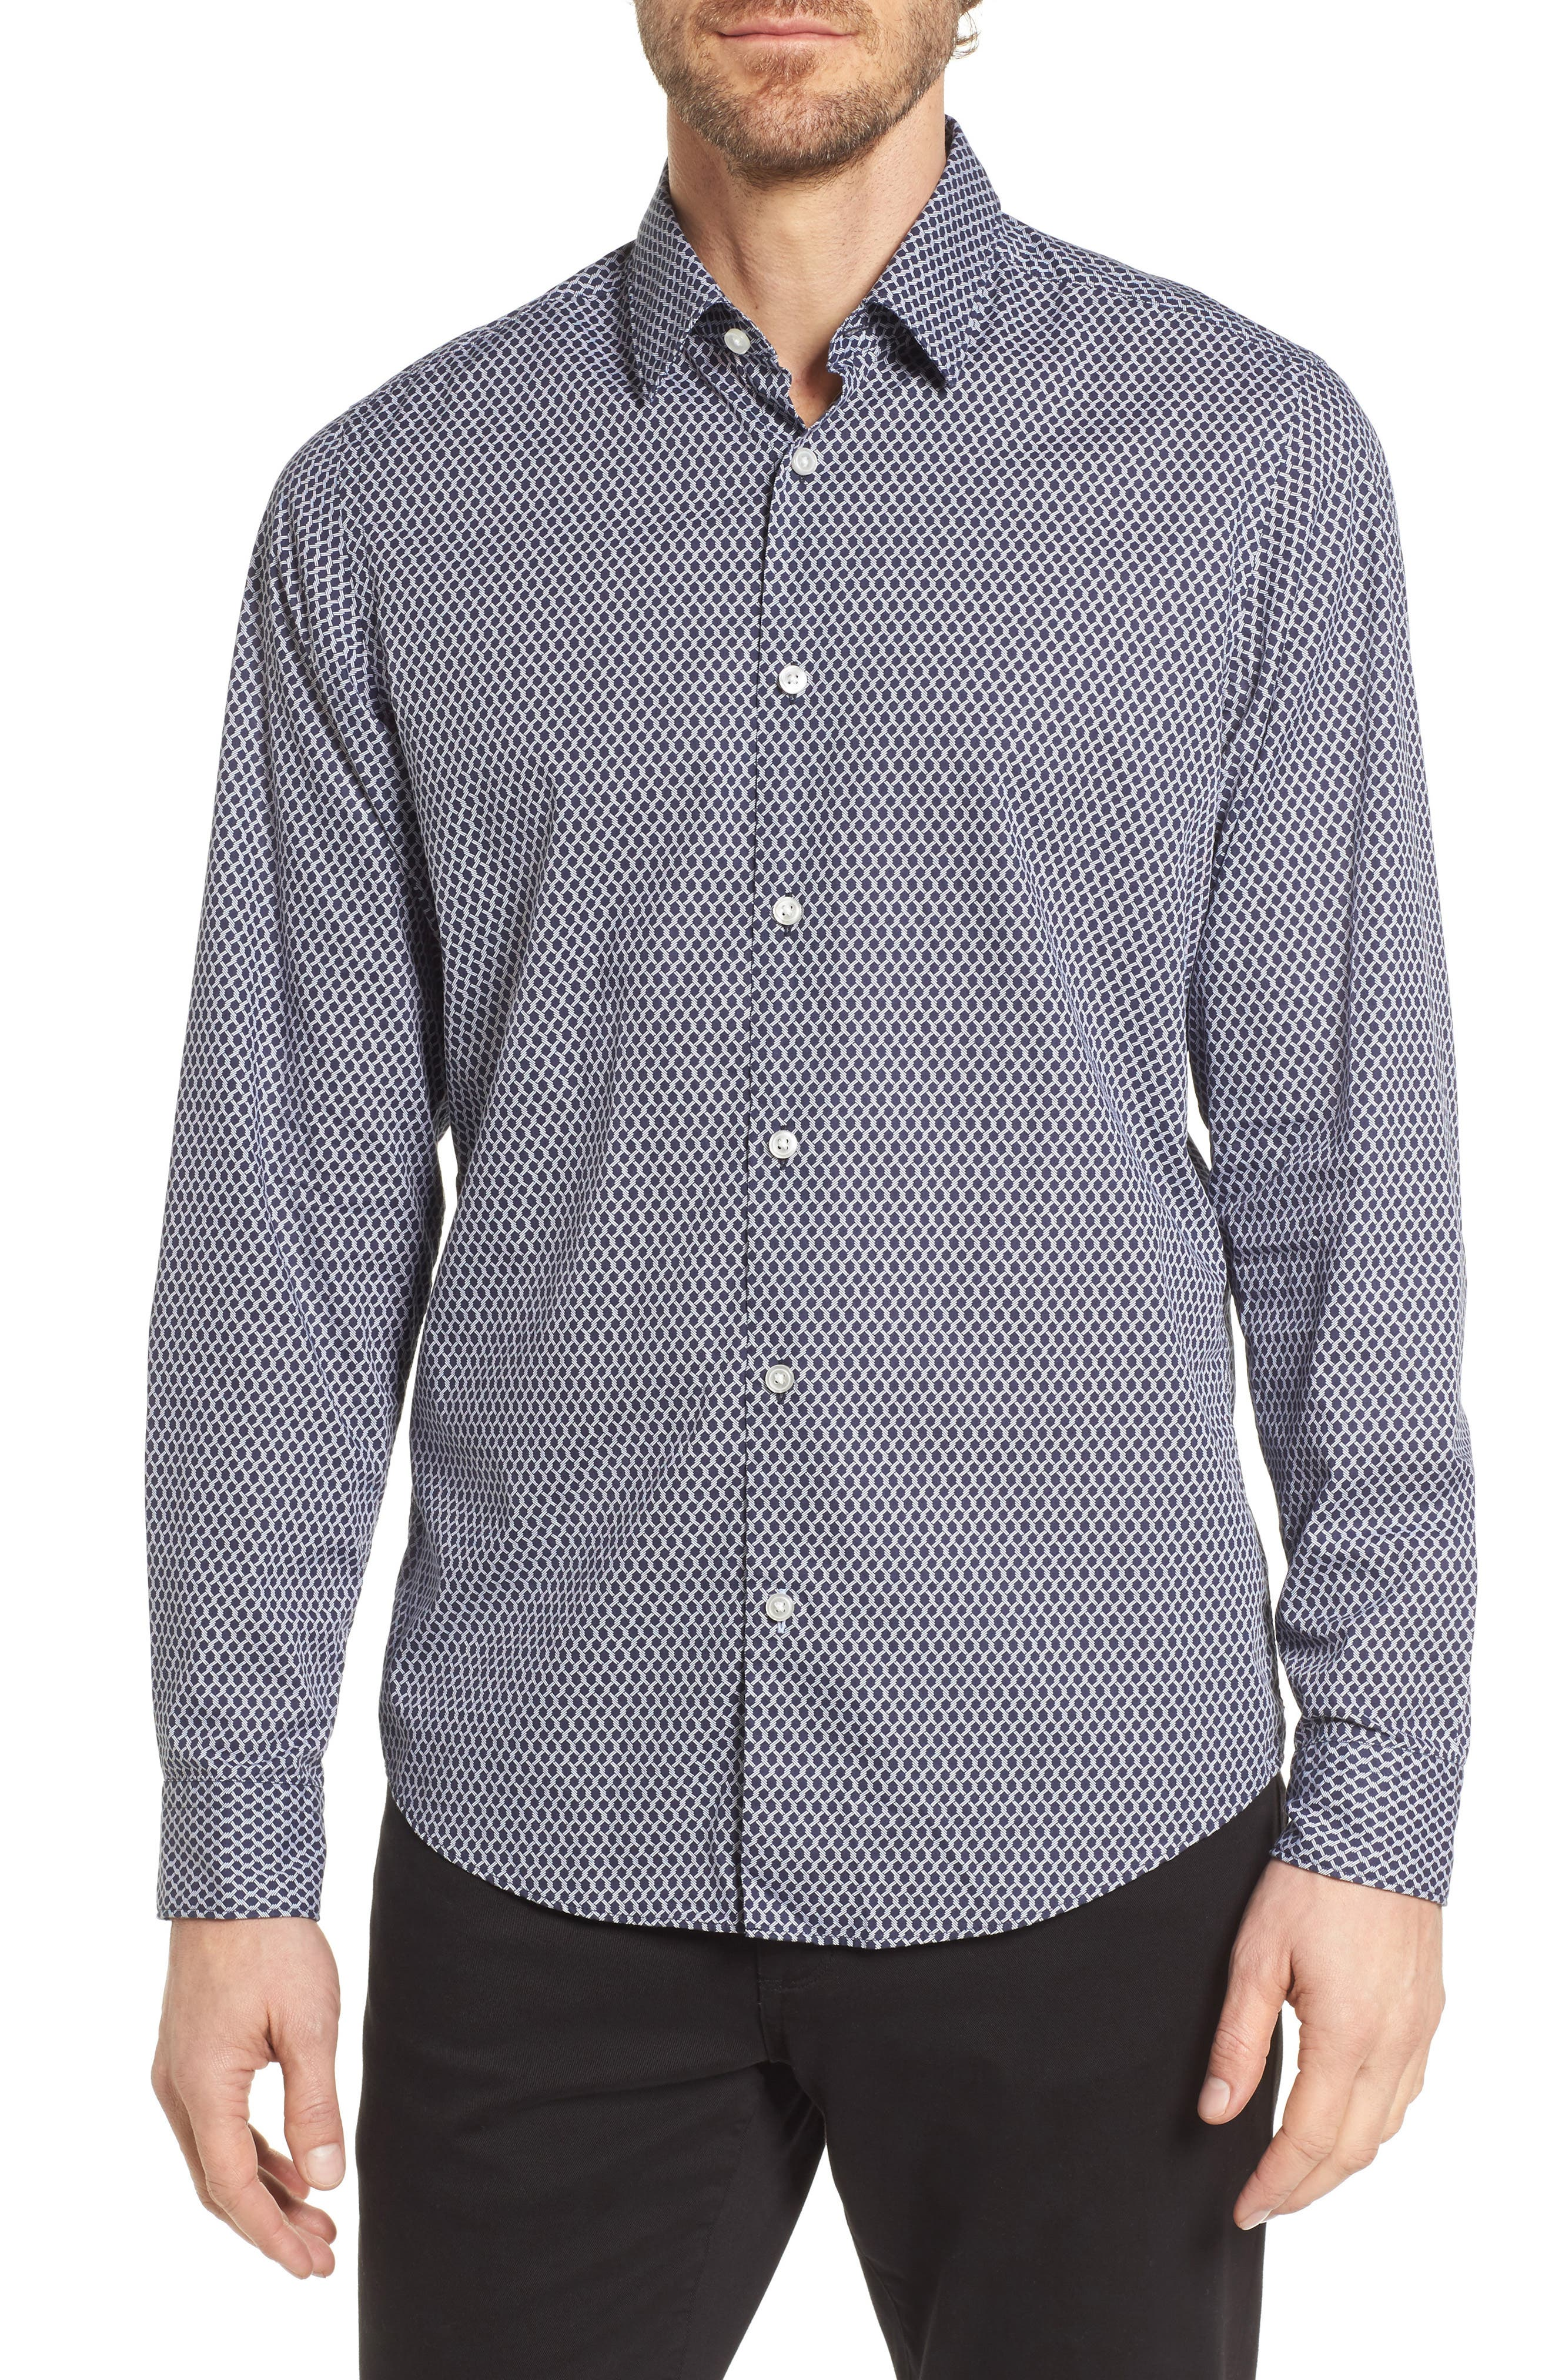 Lukas Regular Fit Print Sport Shirt,                             Main thumbnail 1, color,                             Blue